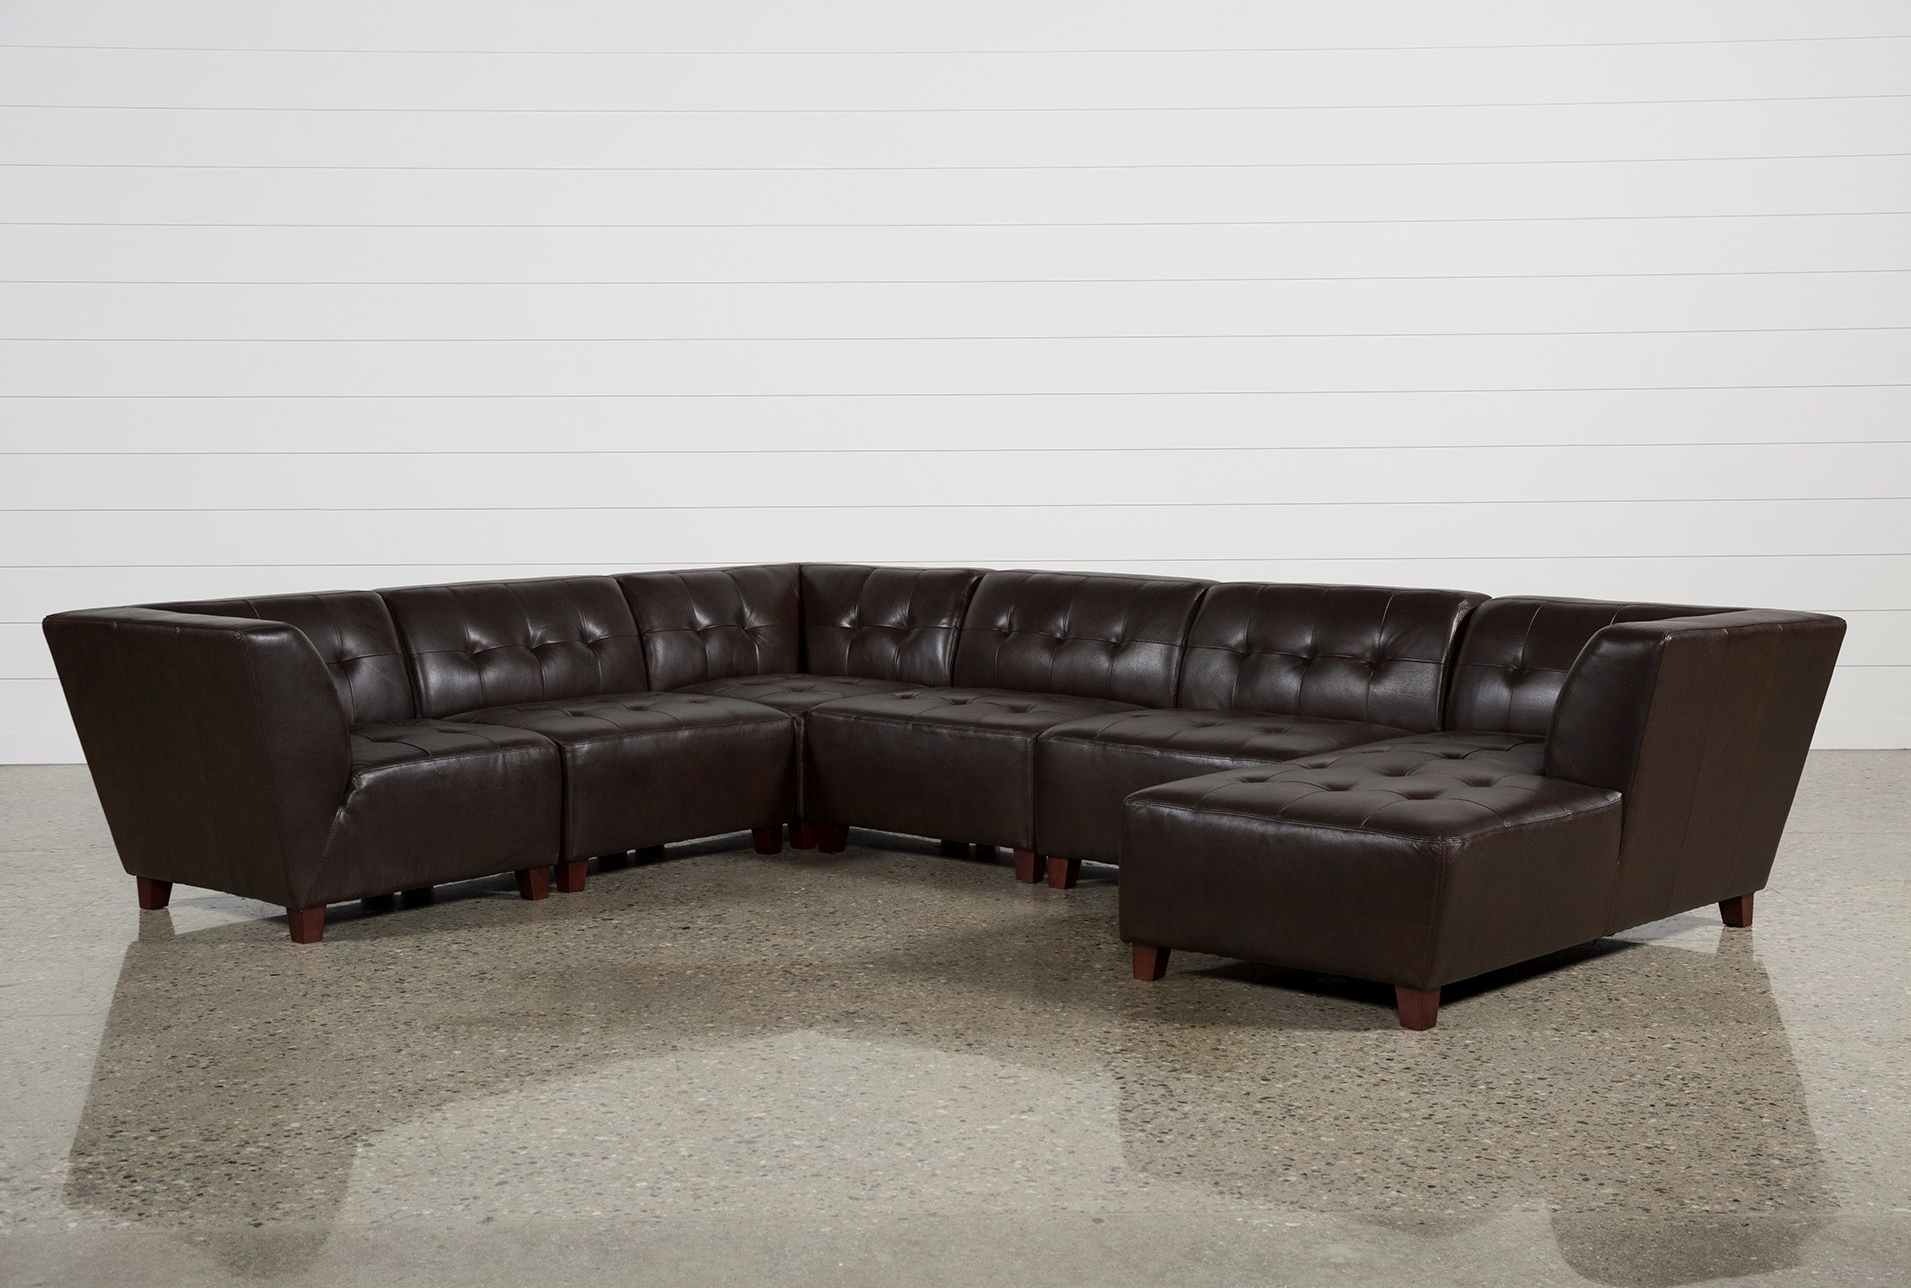 Most Current Sectional Sofas At Sam's Club Throughout Carrington 6 Piece Sectional Sofa Sam S Club With Idea  (View 7 of 20)